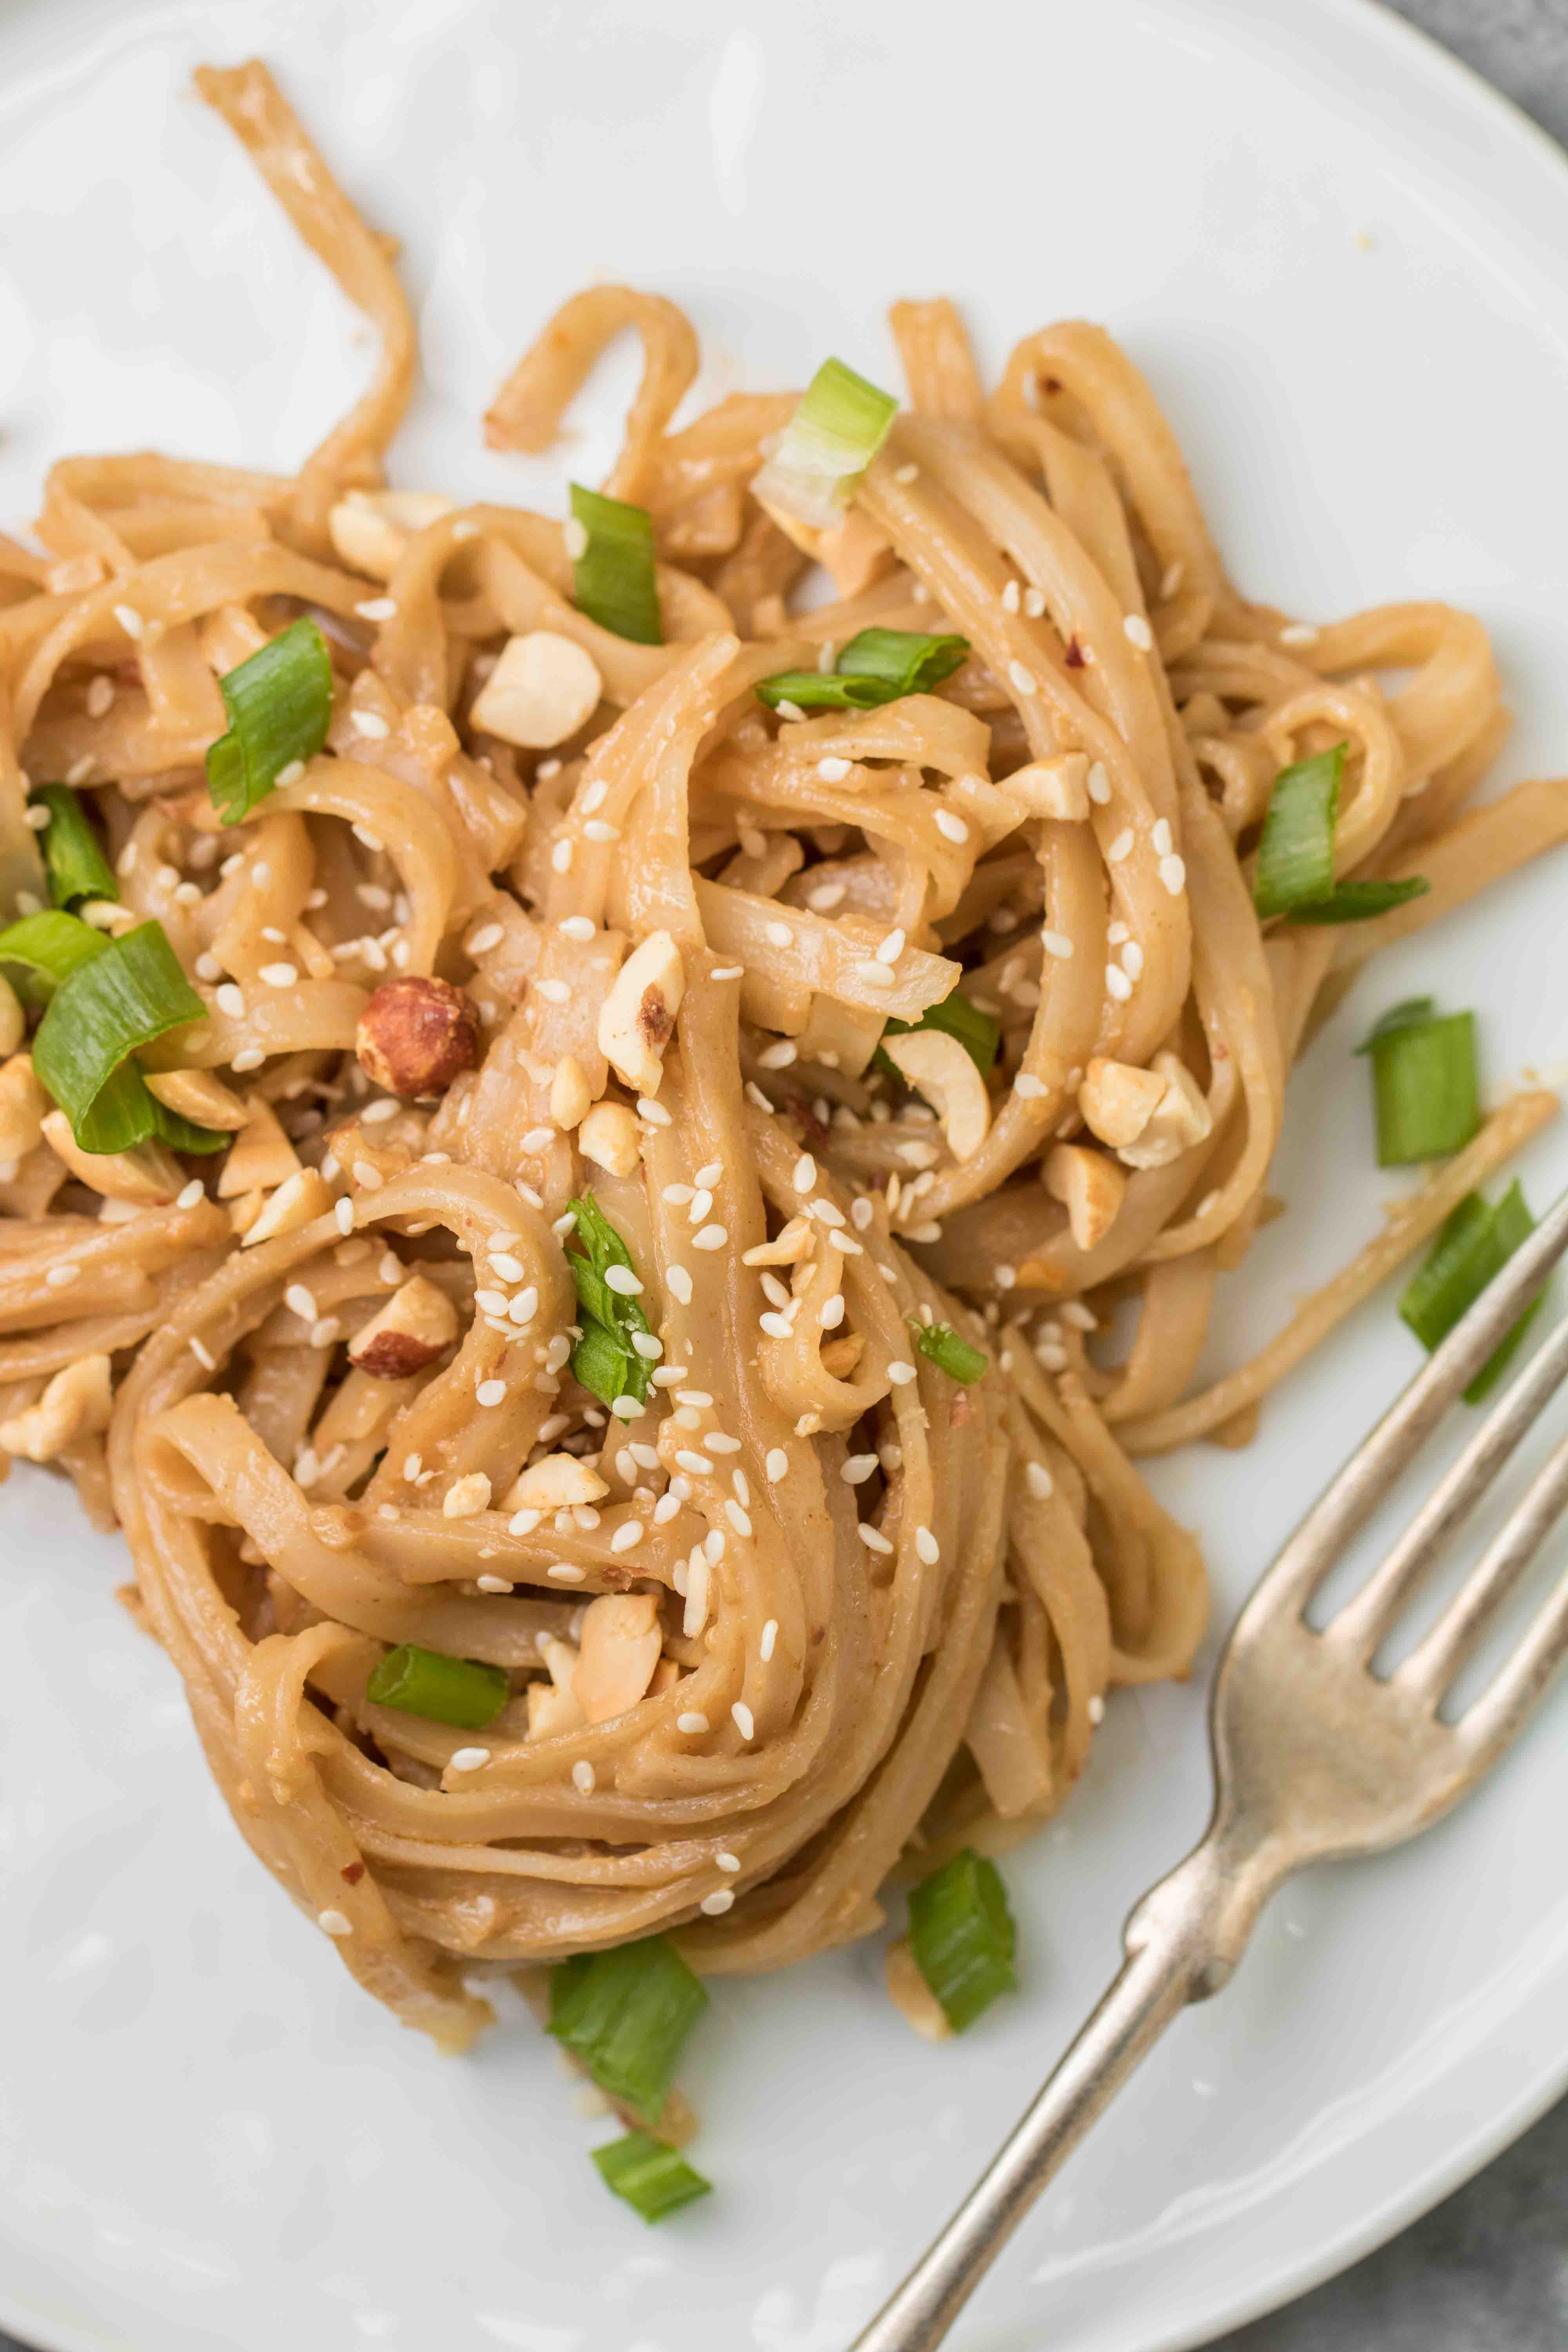 Close up of the peanut butter noodles